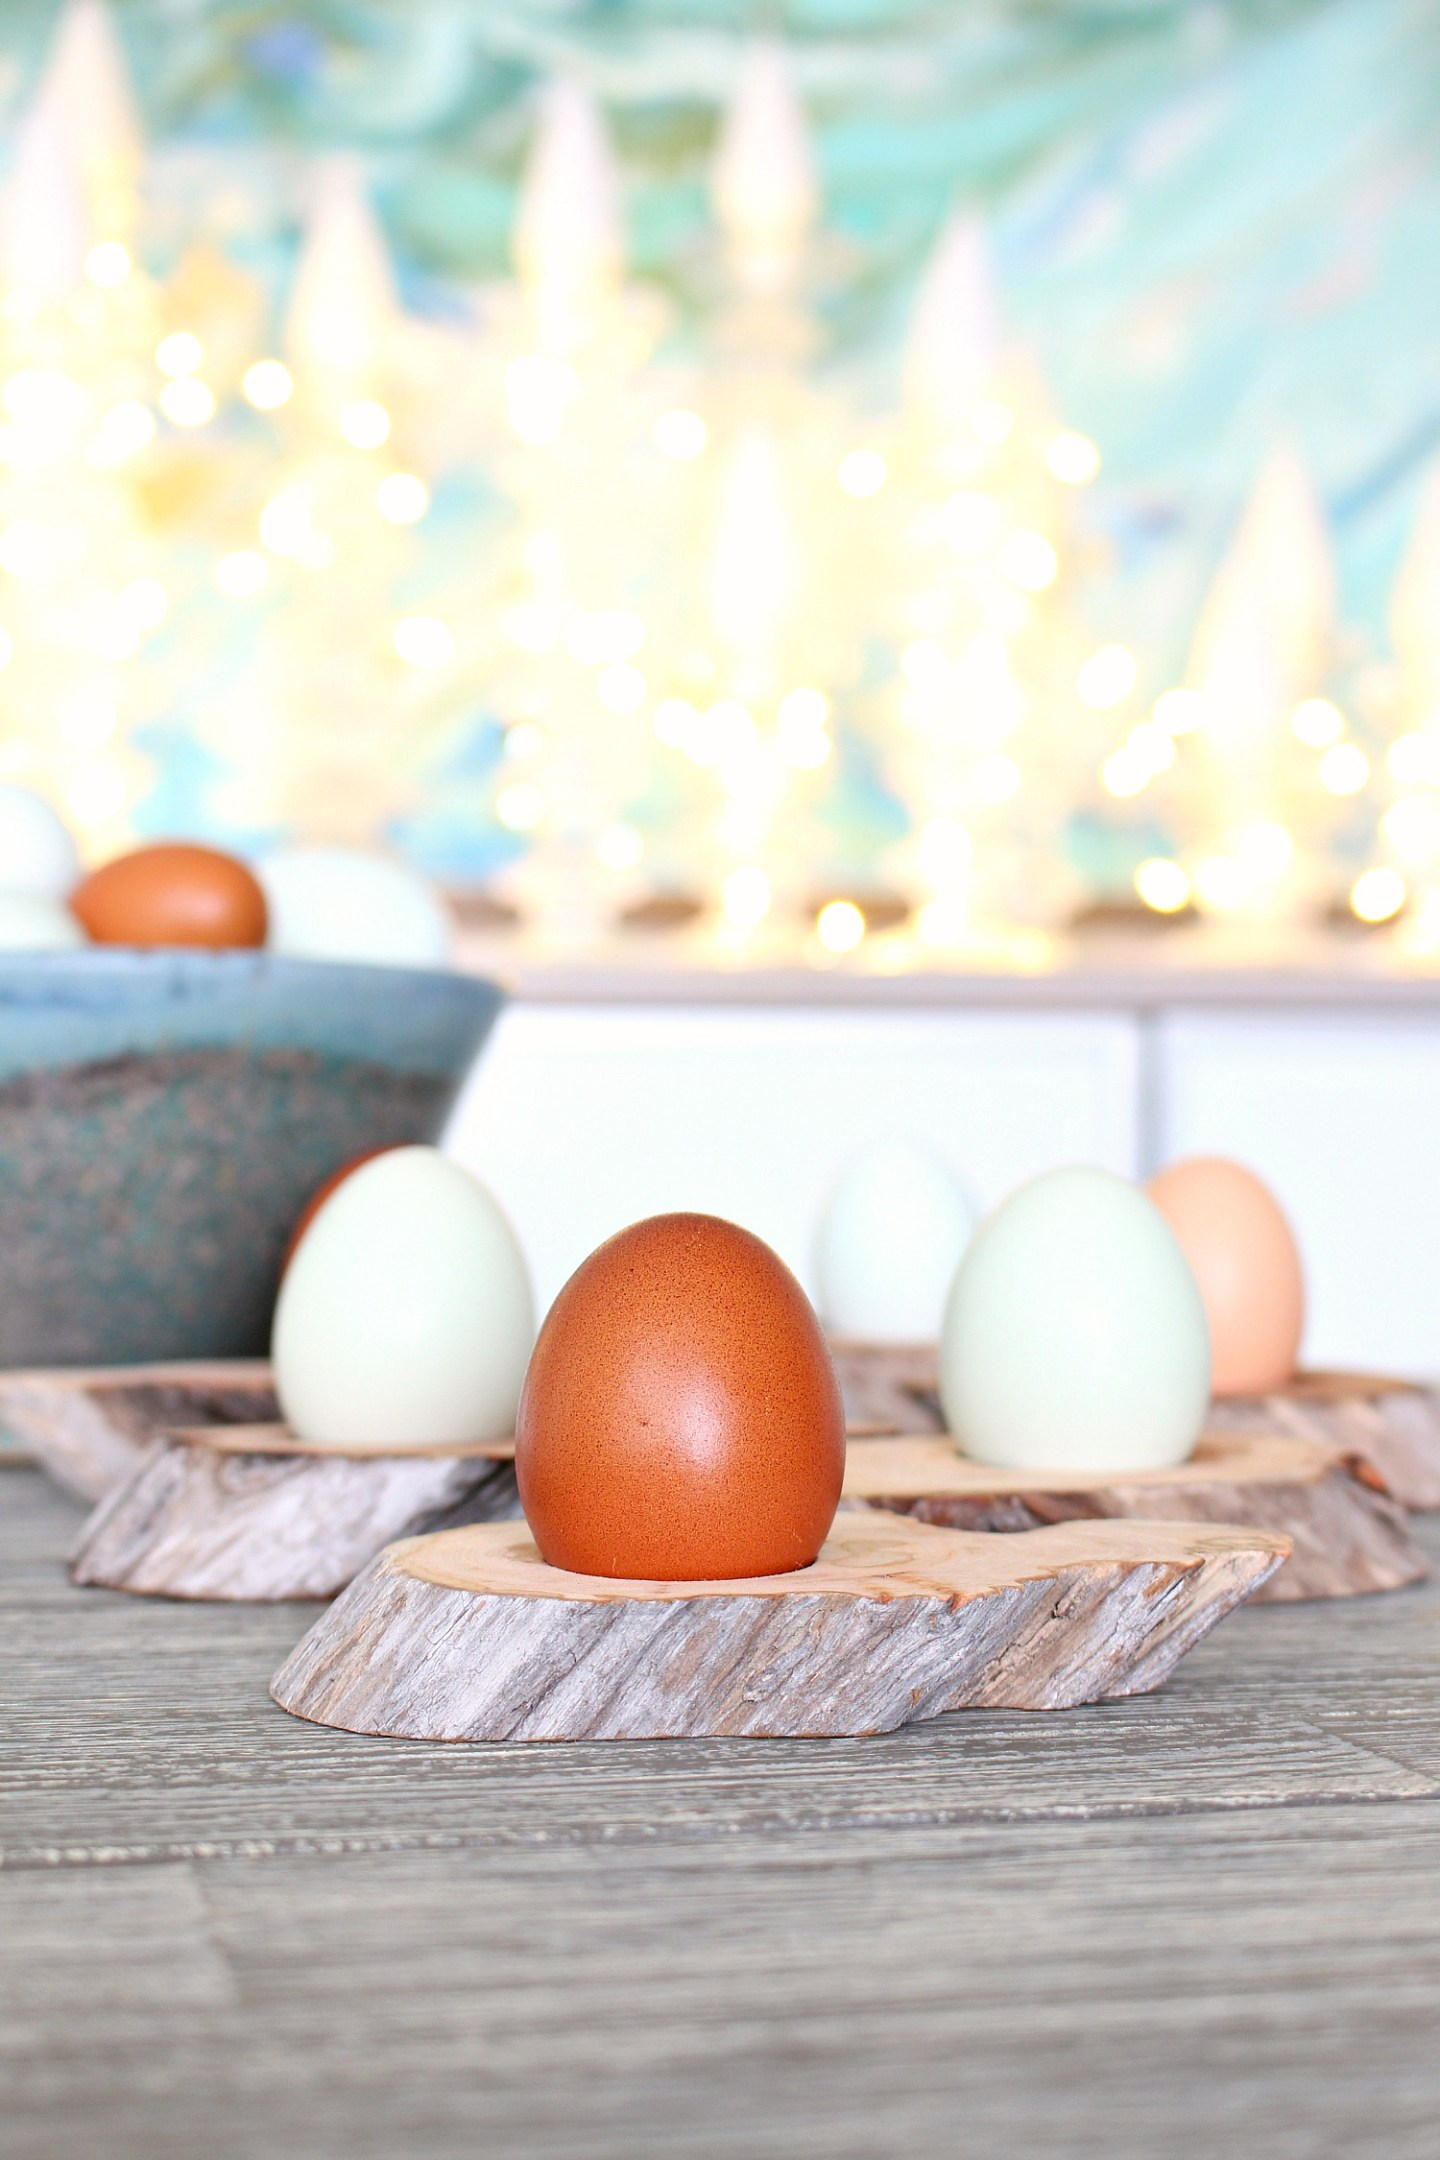 How to Make DIY Egg Cups